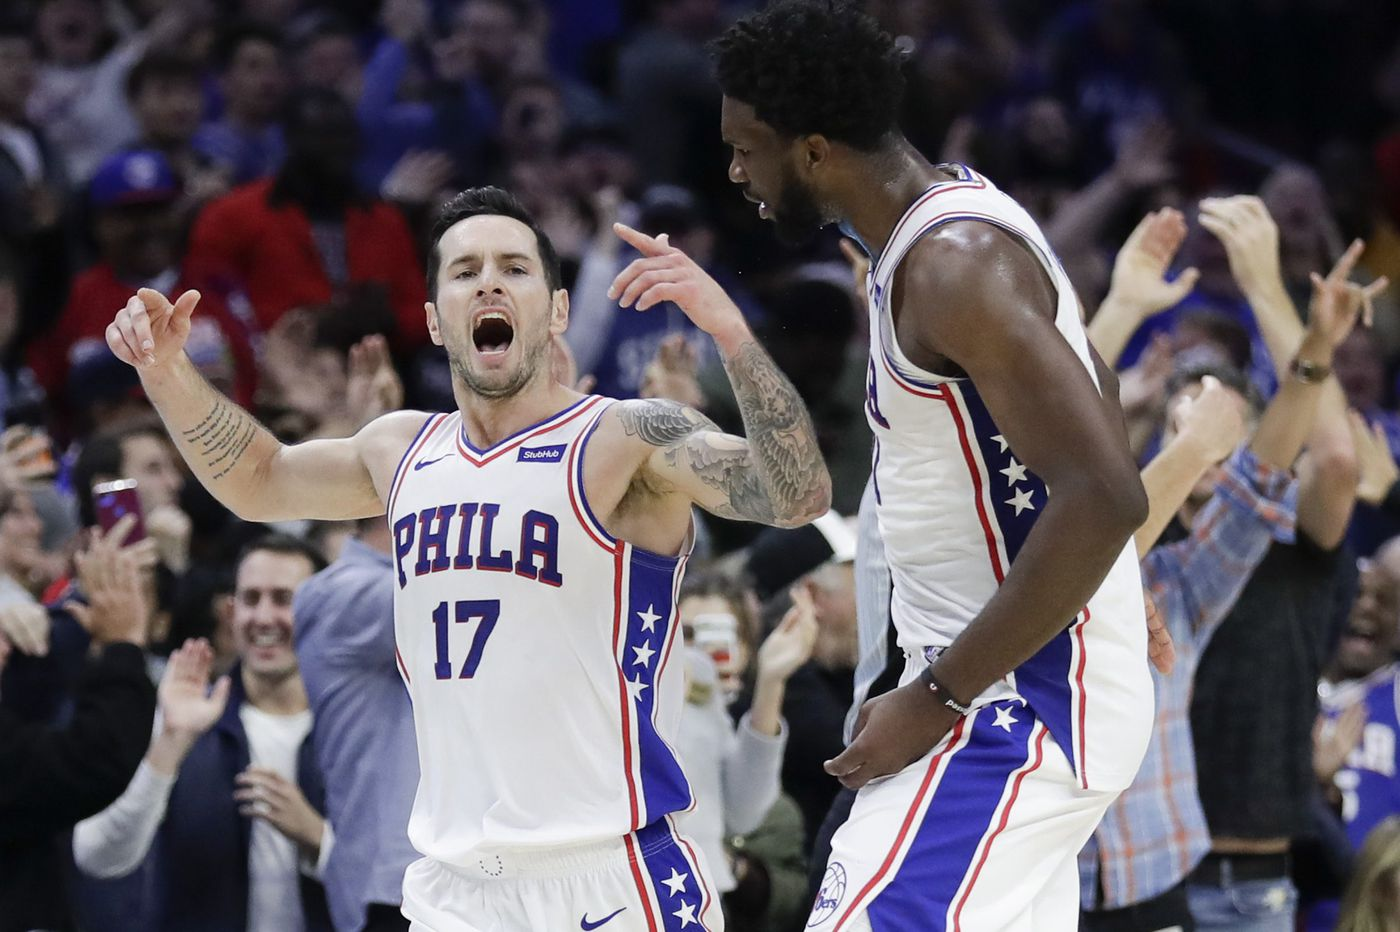 Sixers hold off Magic behind JJ Redick's heroics off the bench, Joel Embiid's 32 points